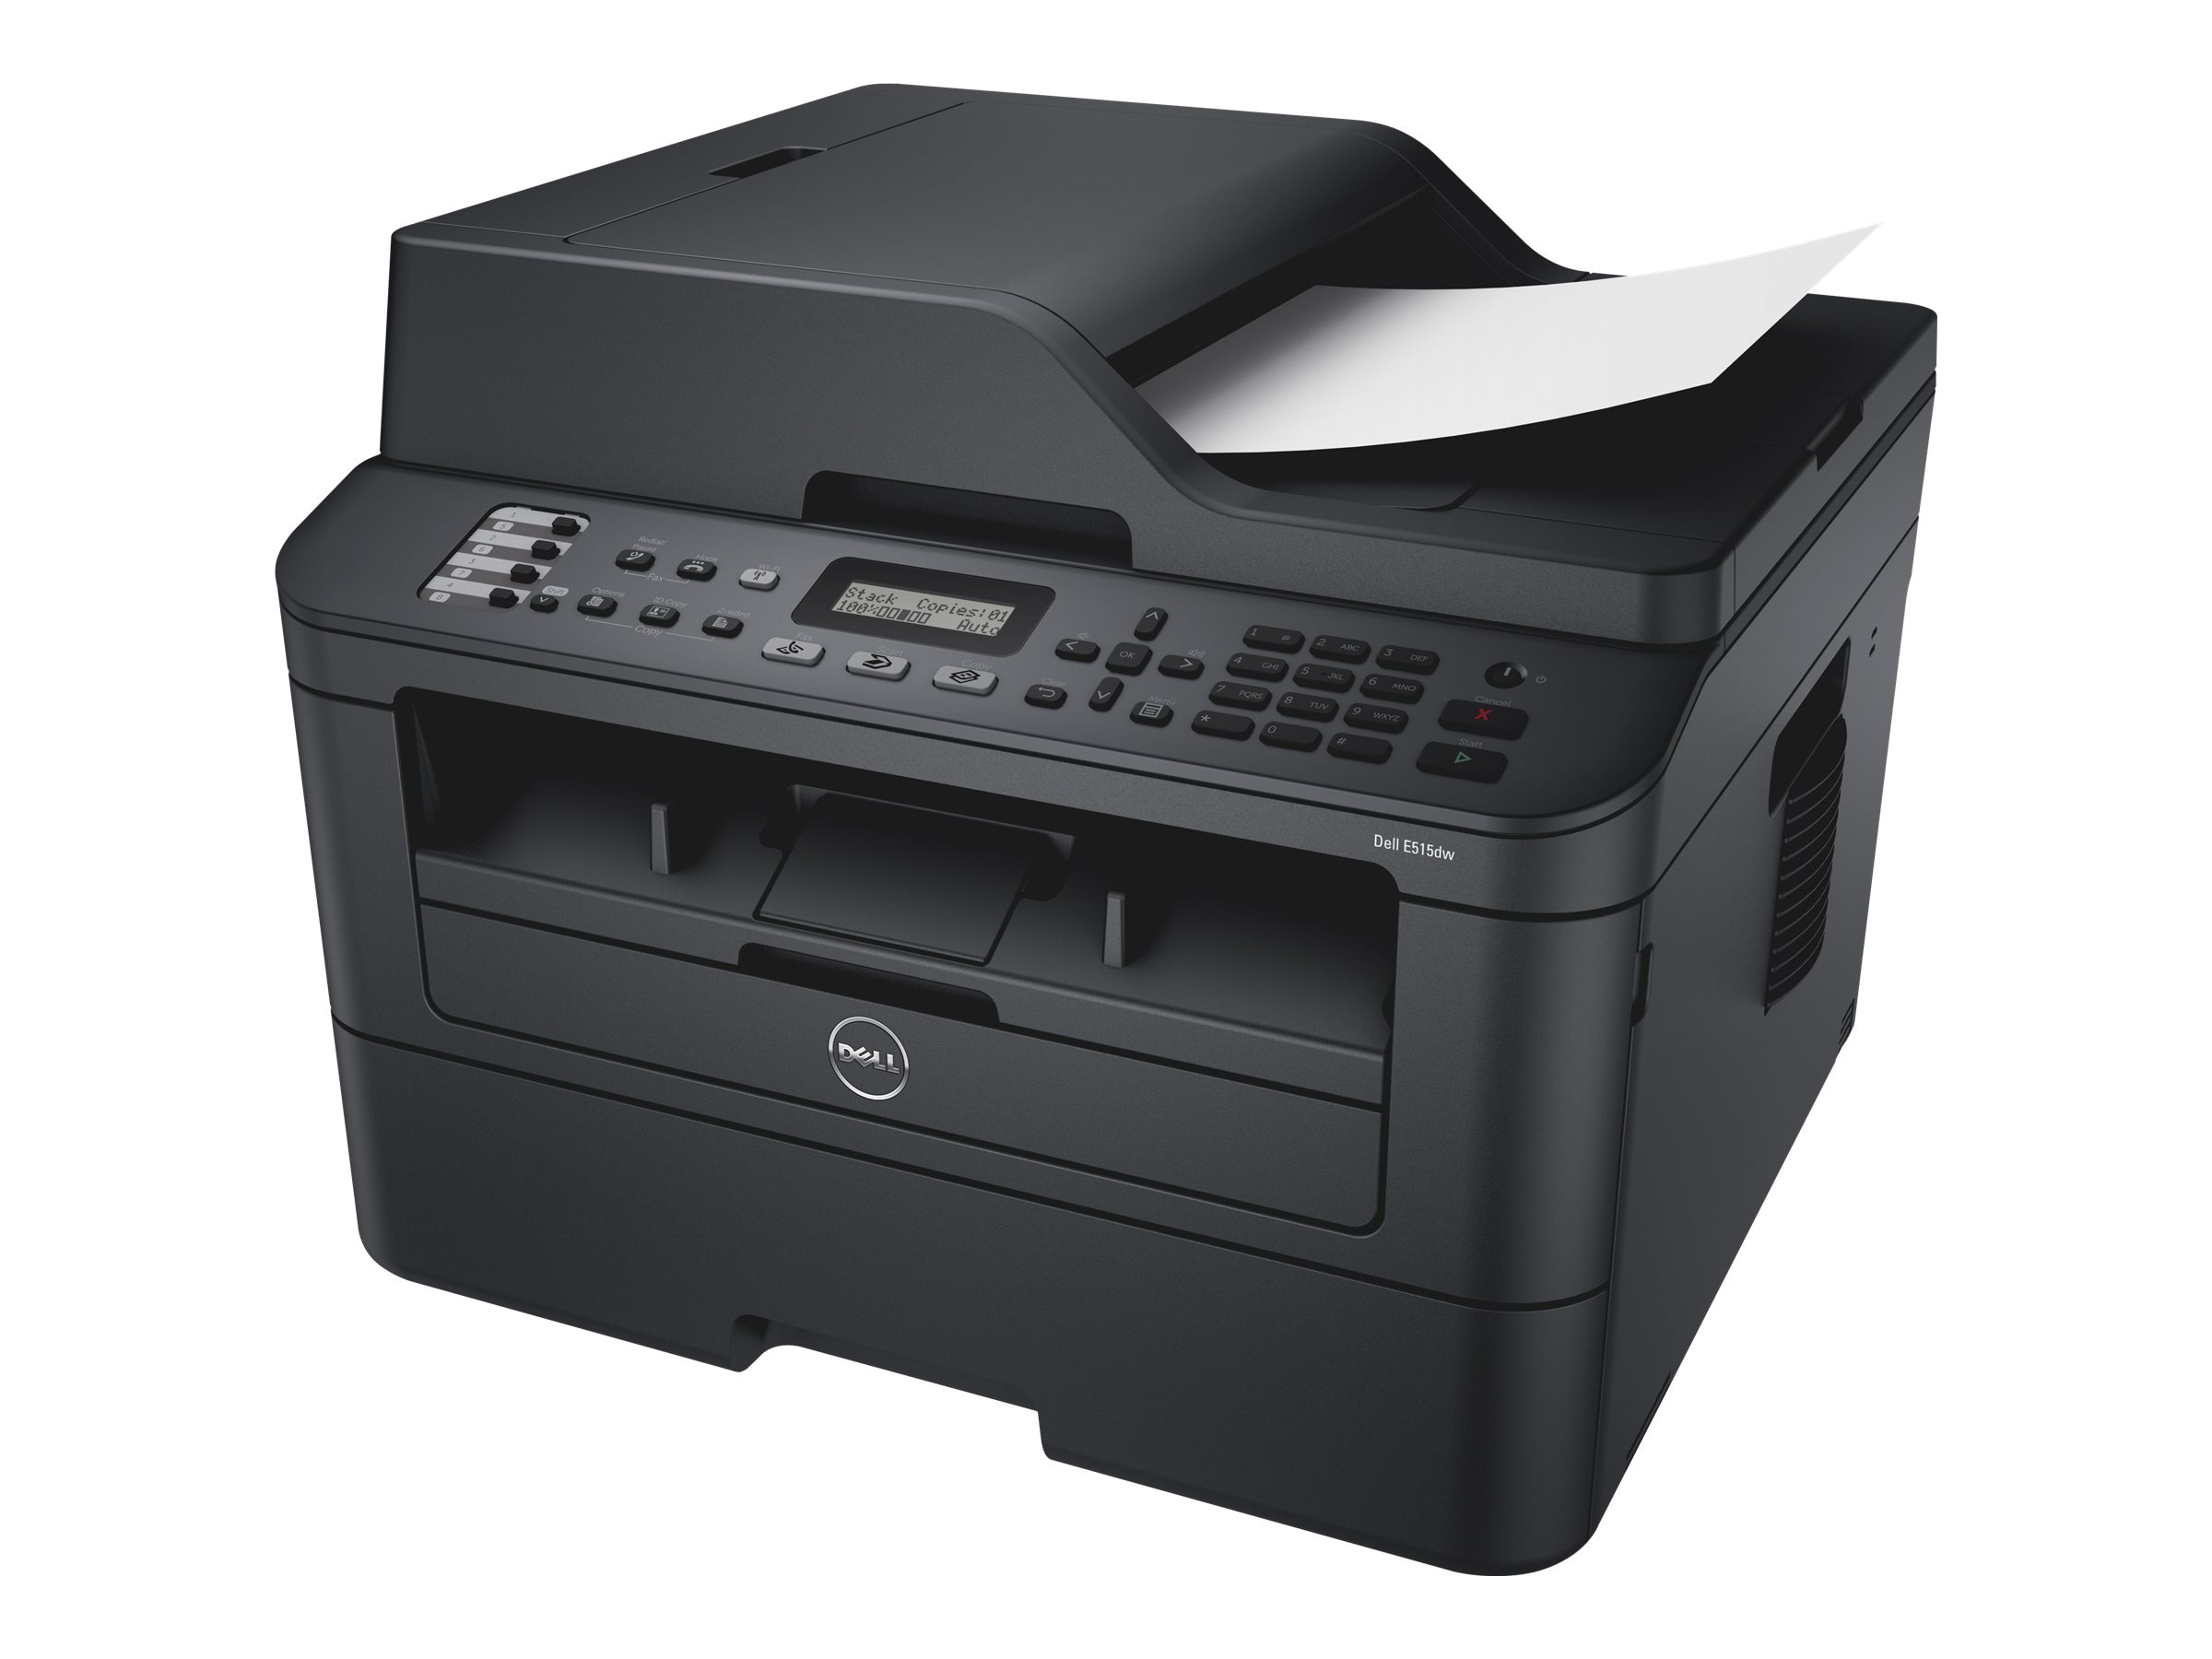 Dell E515dn Multifunction Printer (210-AEDT)